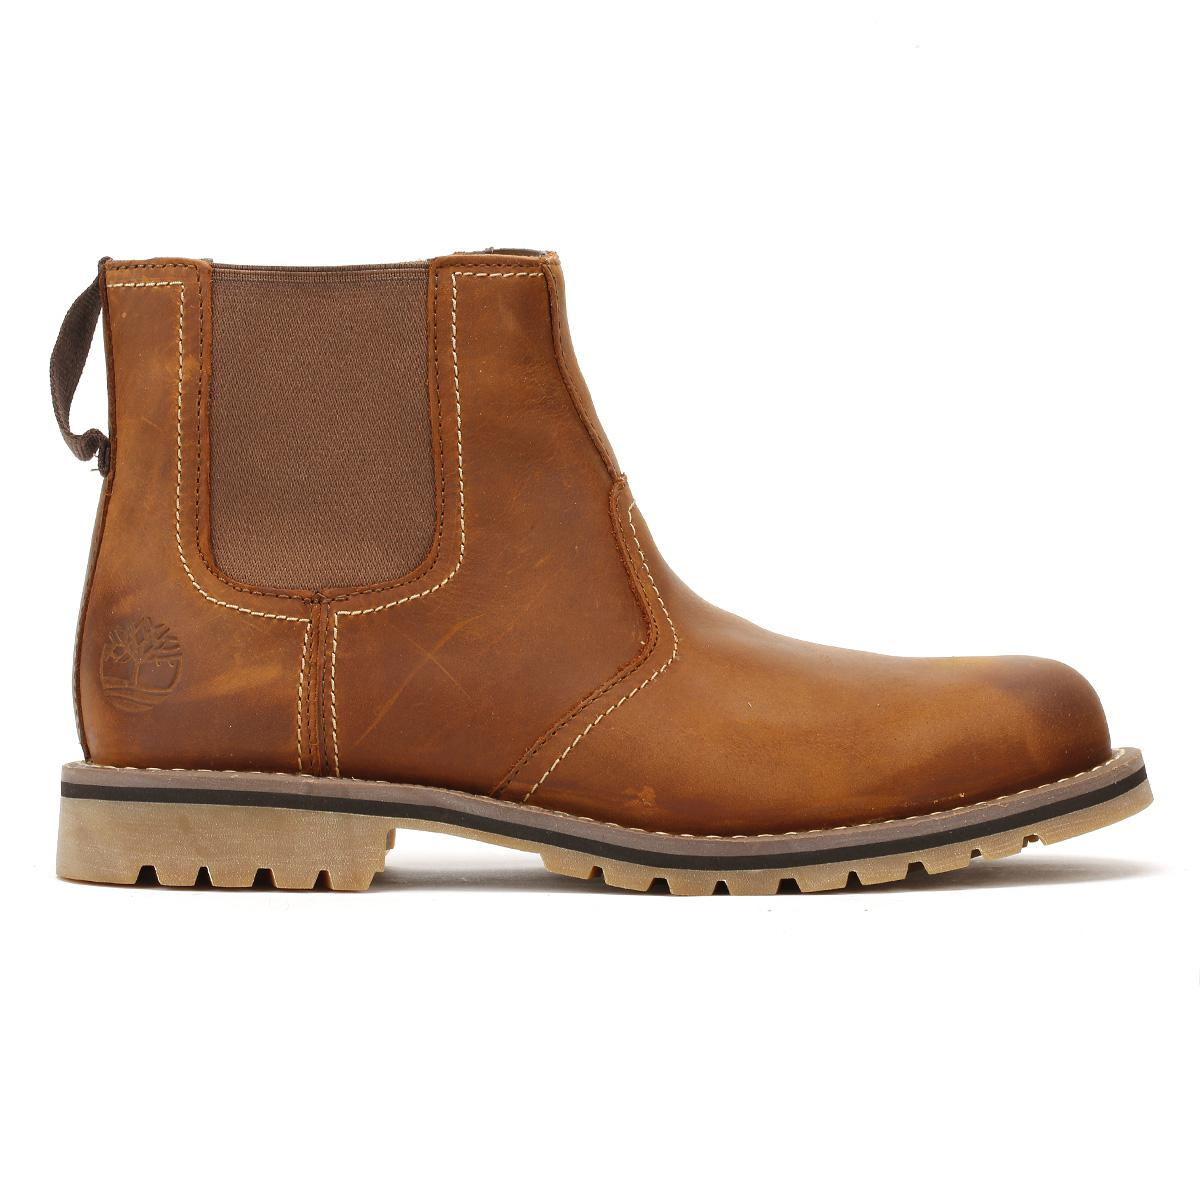 c47070f2040f Lyst - Timberland Mens Oakwood Brown Larchmont Chelsea Boots in ...